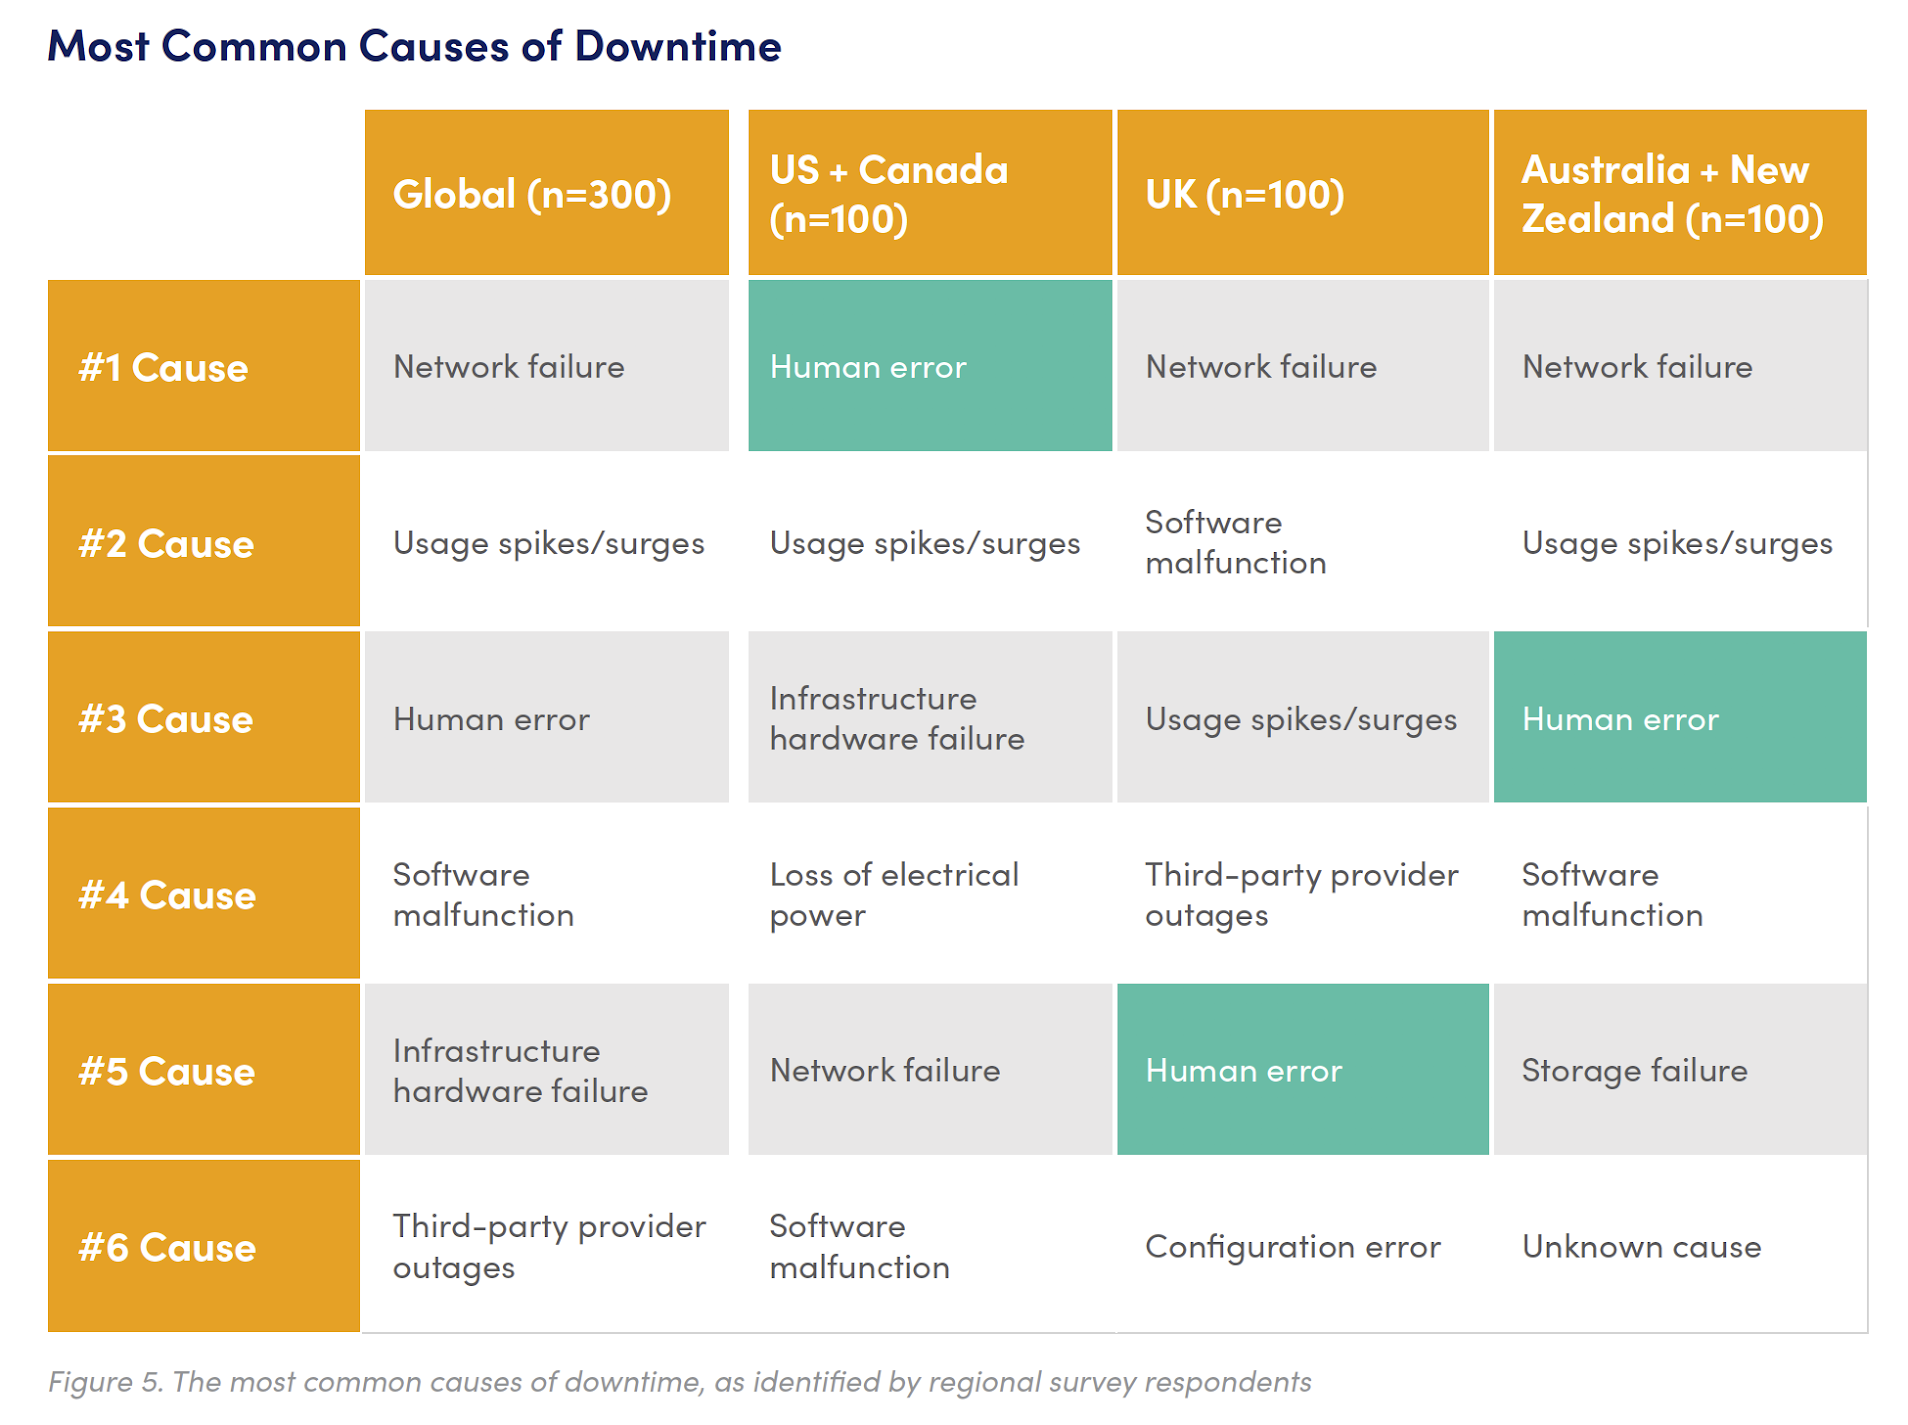 Figure 5. The most common causes of downtime, as identified by regional survey respondents